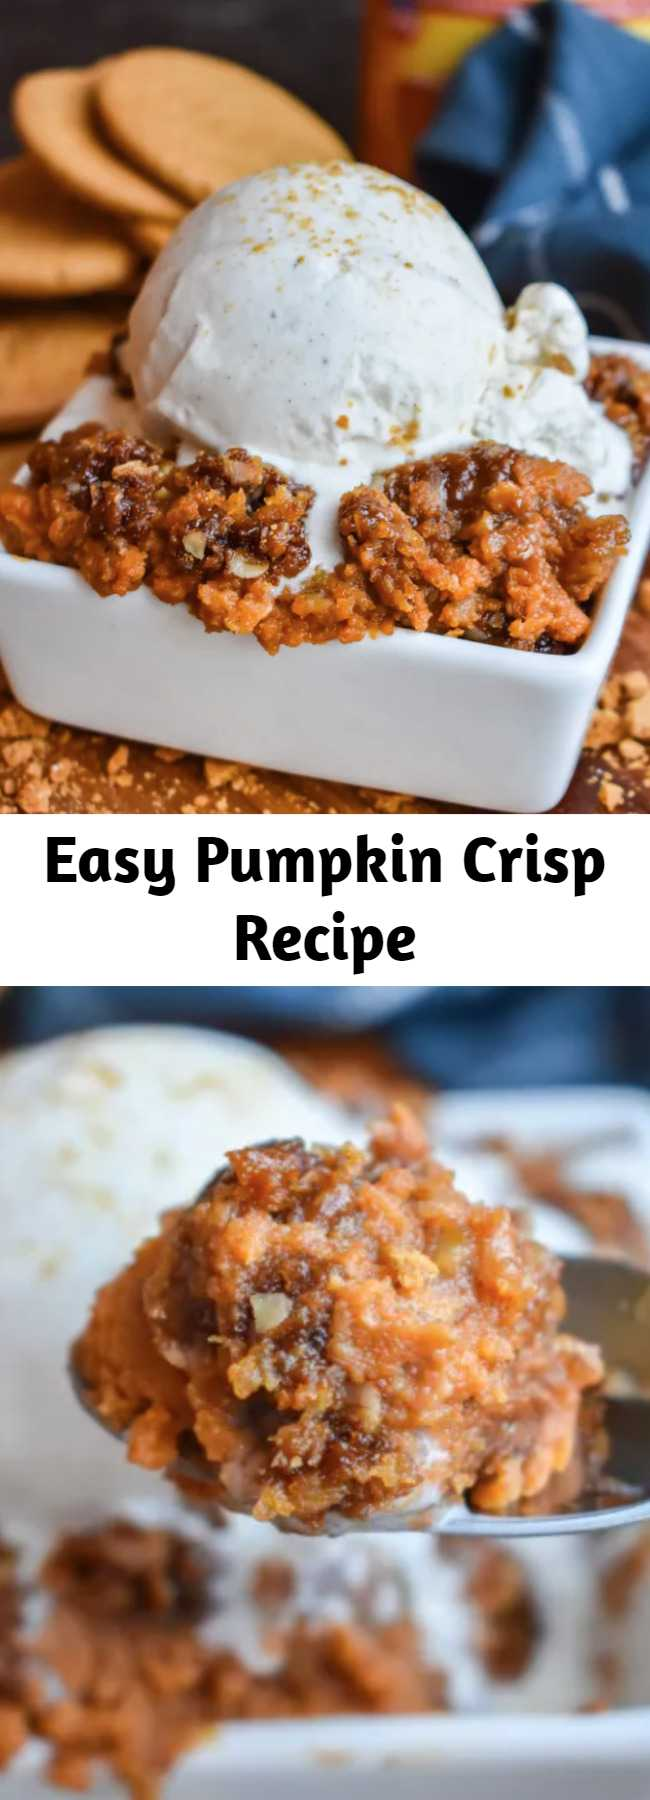 Easy Pumpkin Crisp Recipe - It'll take about 1 bite of this goodness to realize Pumpkin Crisp is your new favorite fall dessert! The smooth, perfectly spiced pumpkin filling and the crunchy topping is truly a match made in heaven!! #Pumpkin #PumpkinCrisp #ALaMode #GingersnapCookies #Crisp